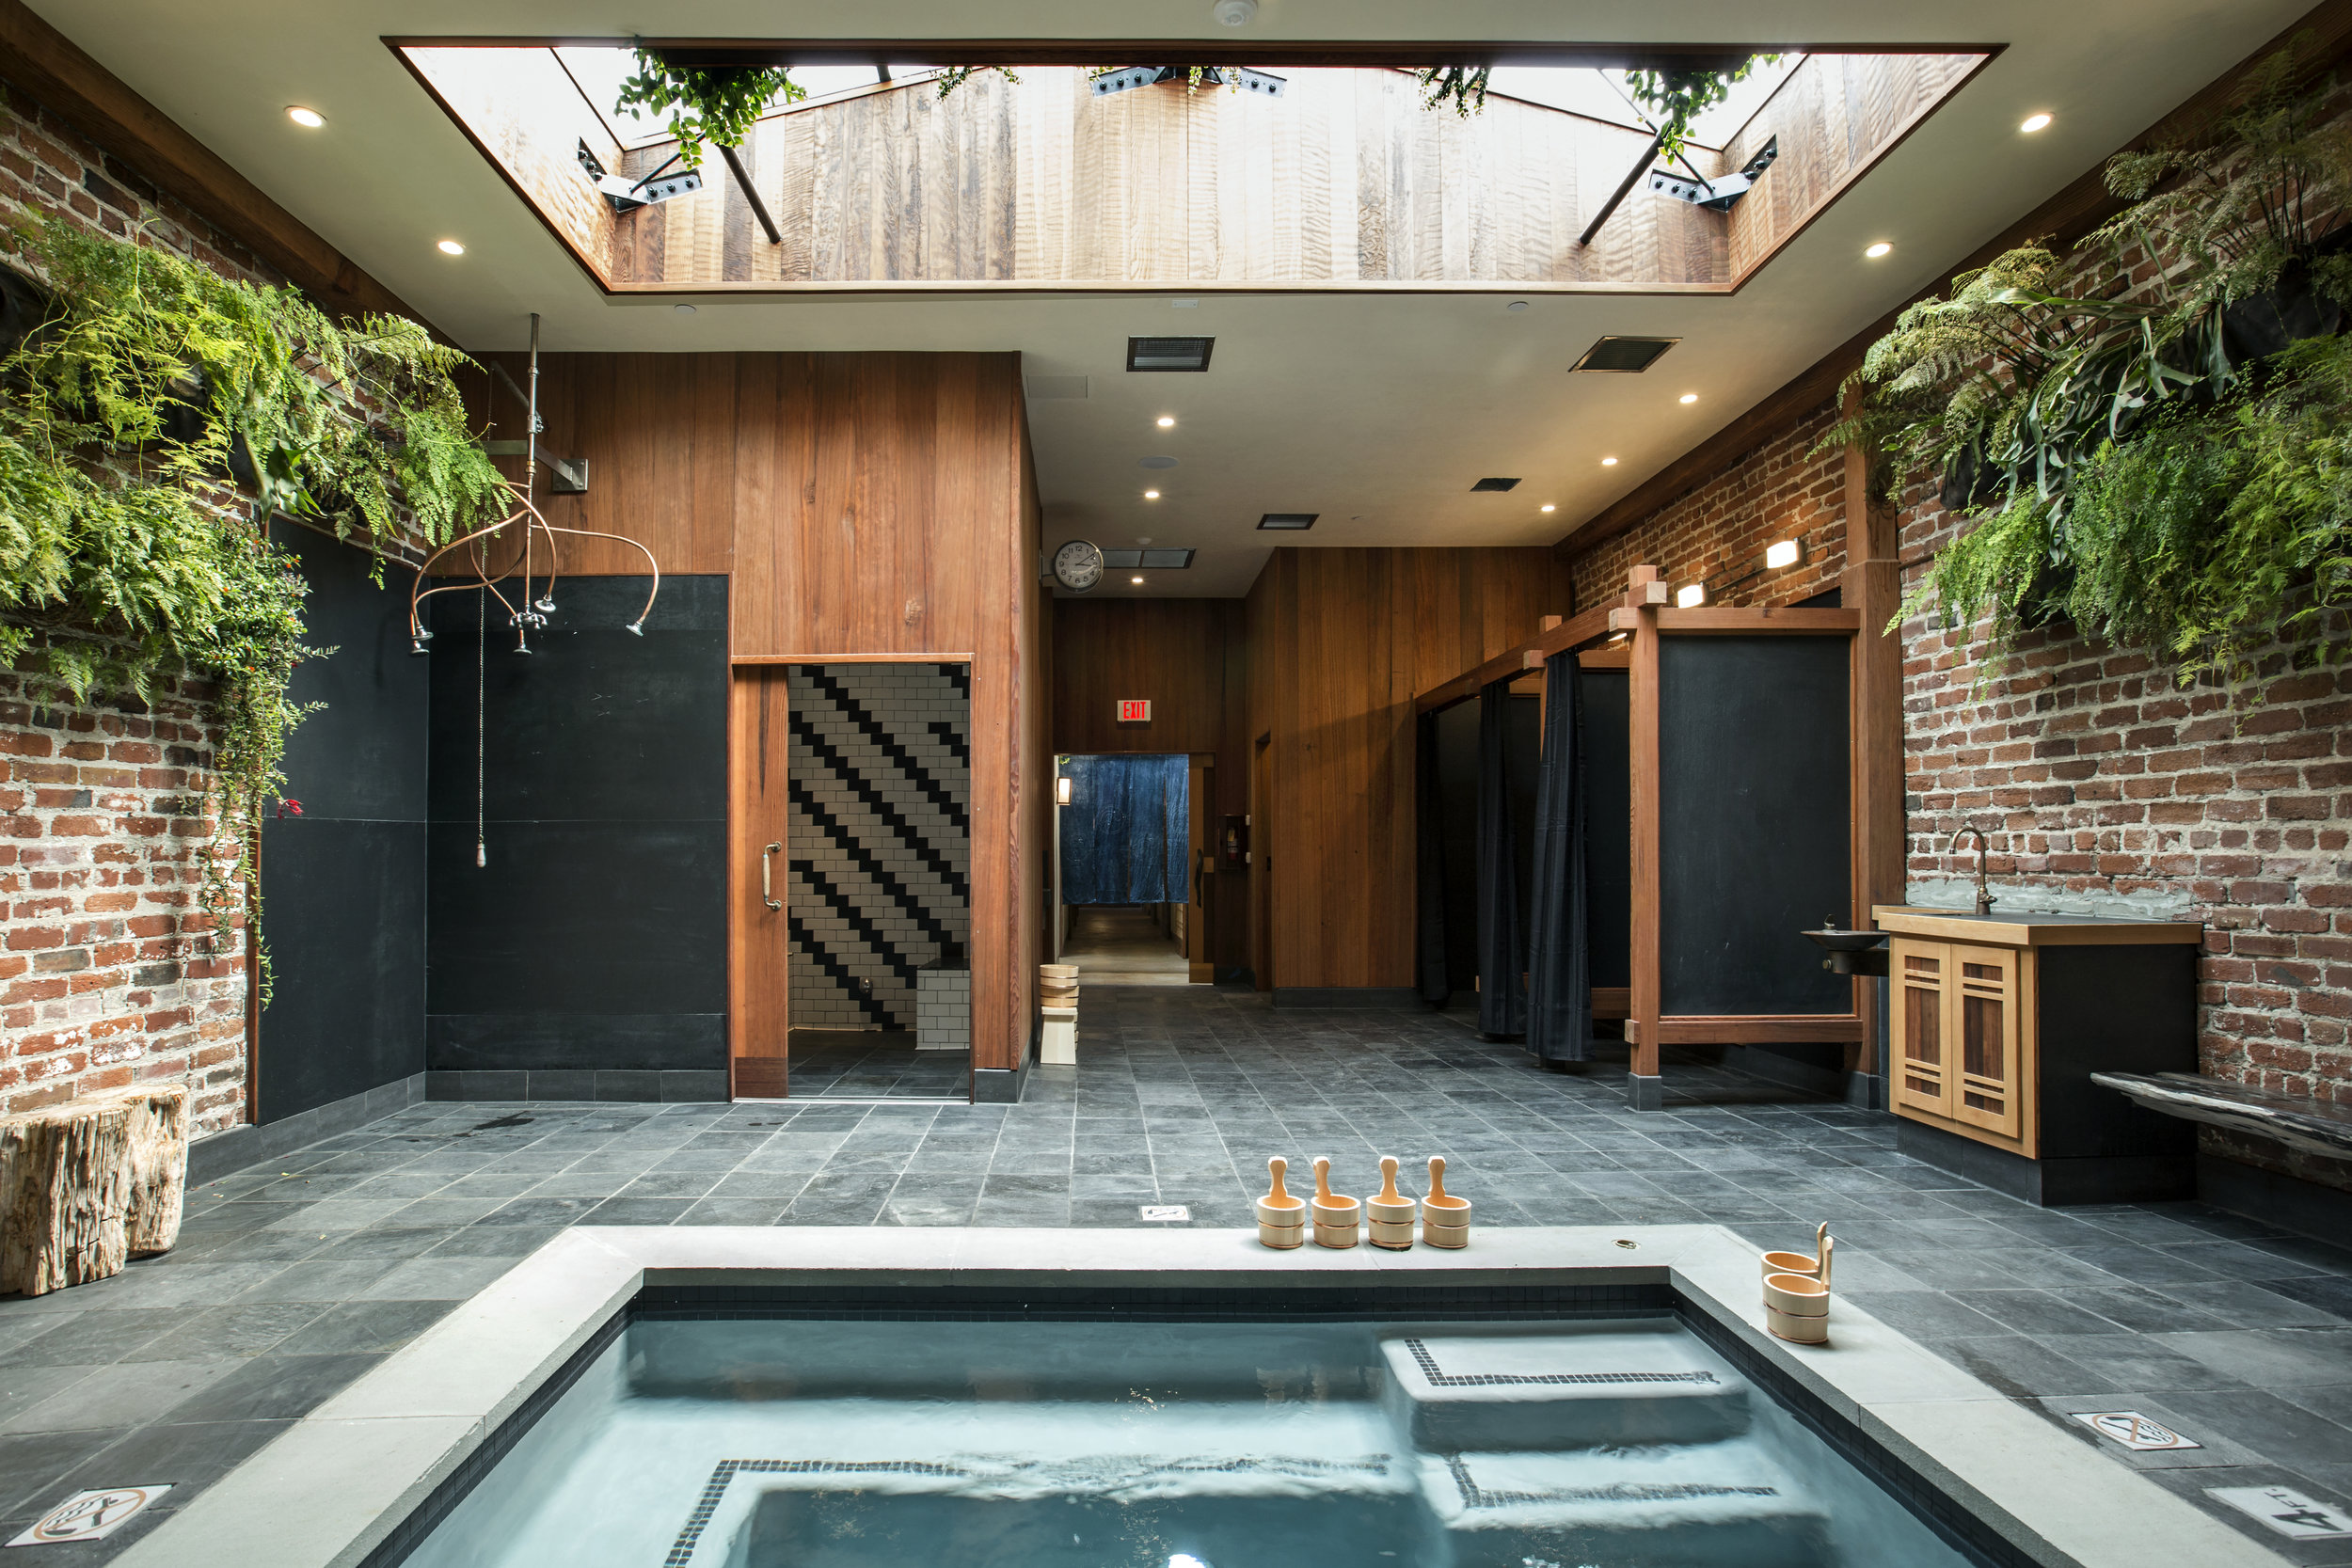 Onsen a Japanese inspired communal bathhouse